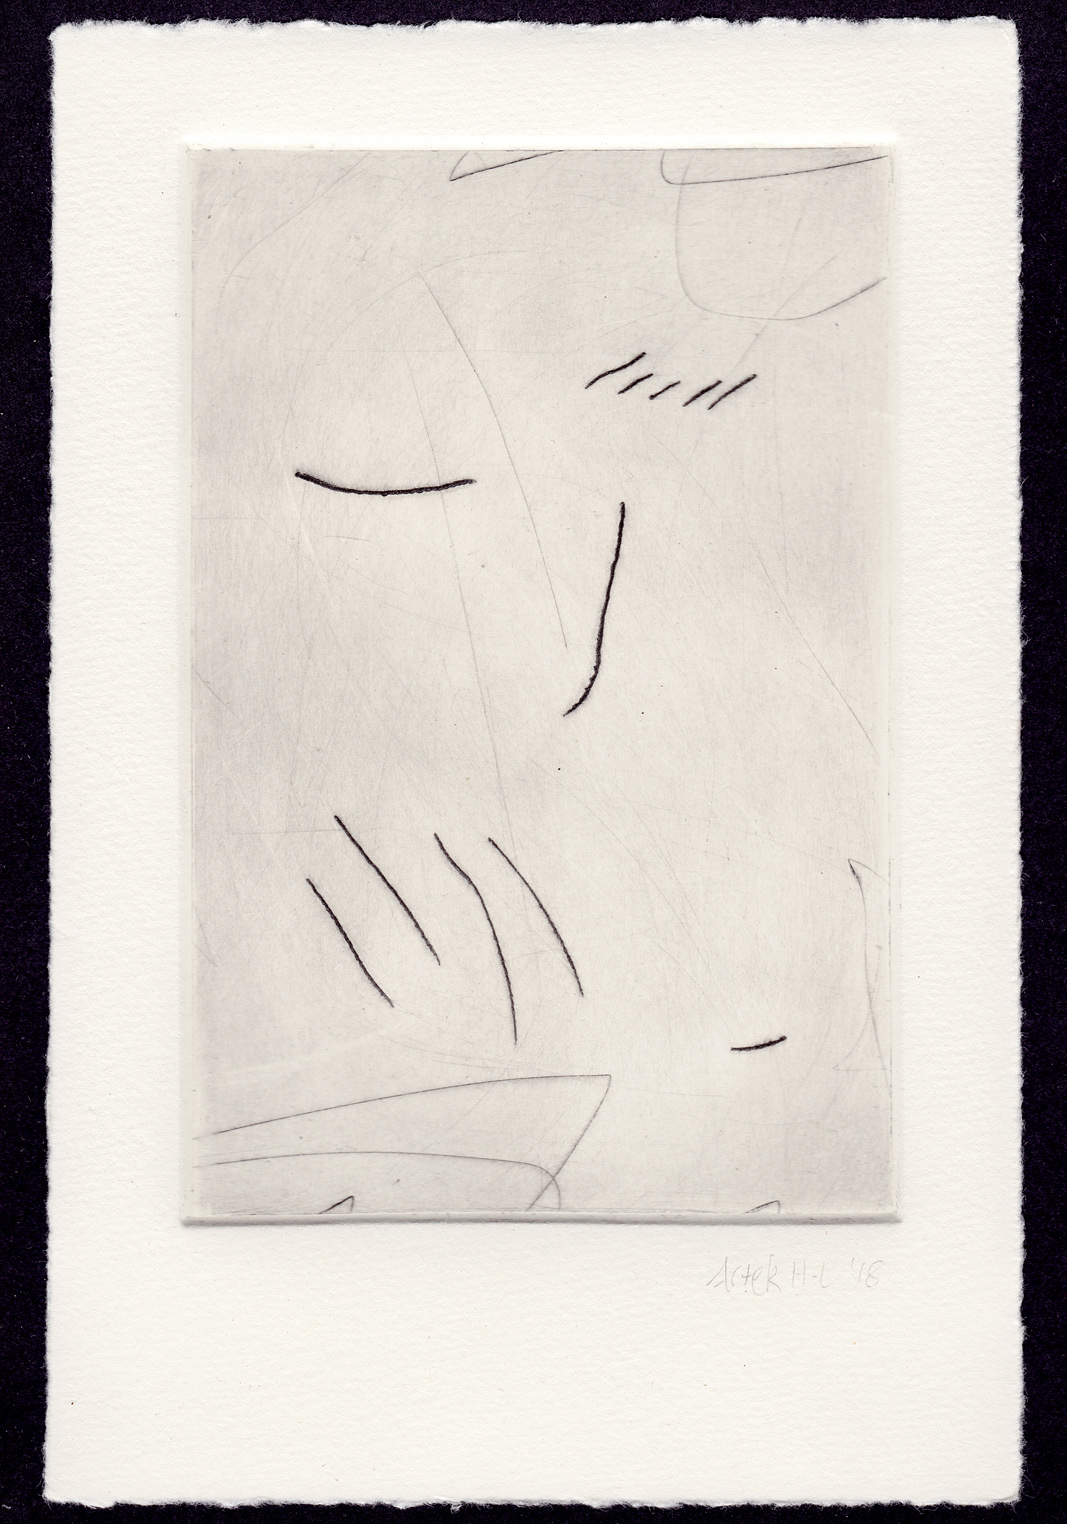 An etching print, state 2